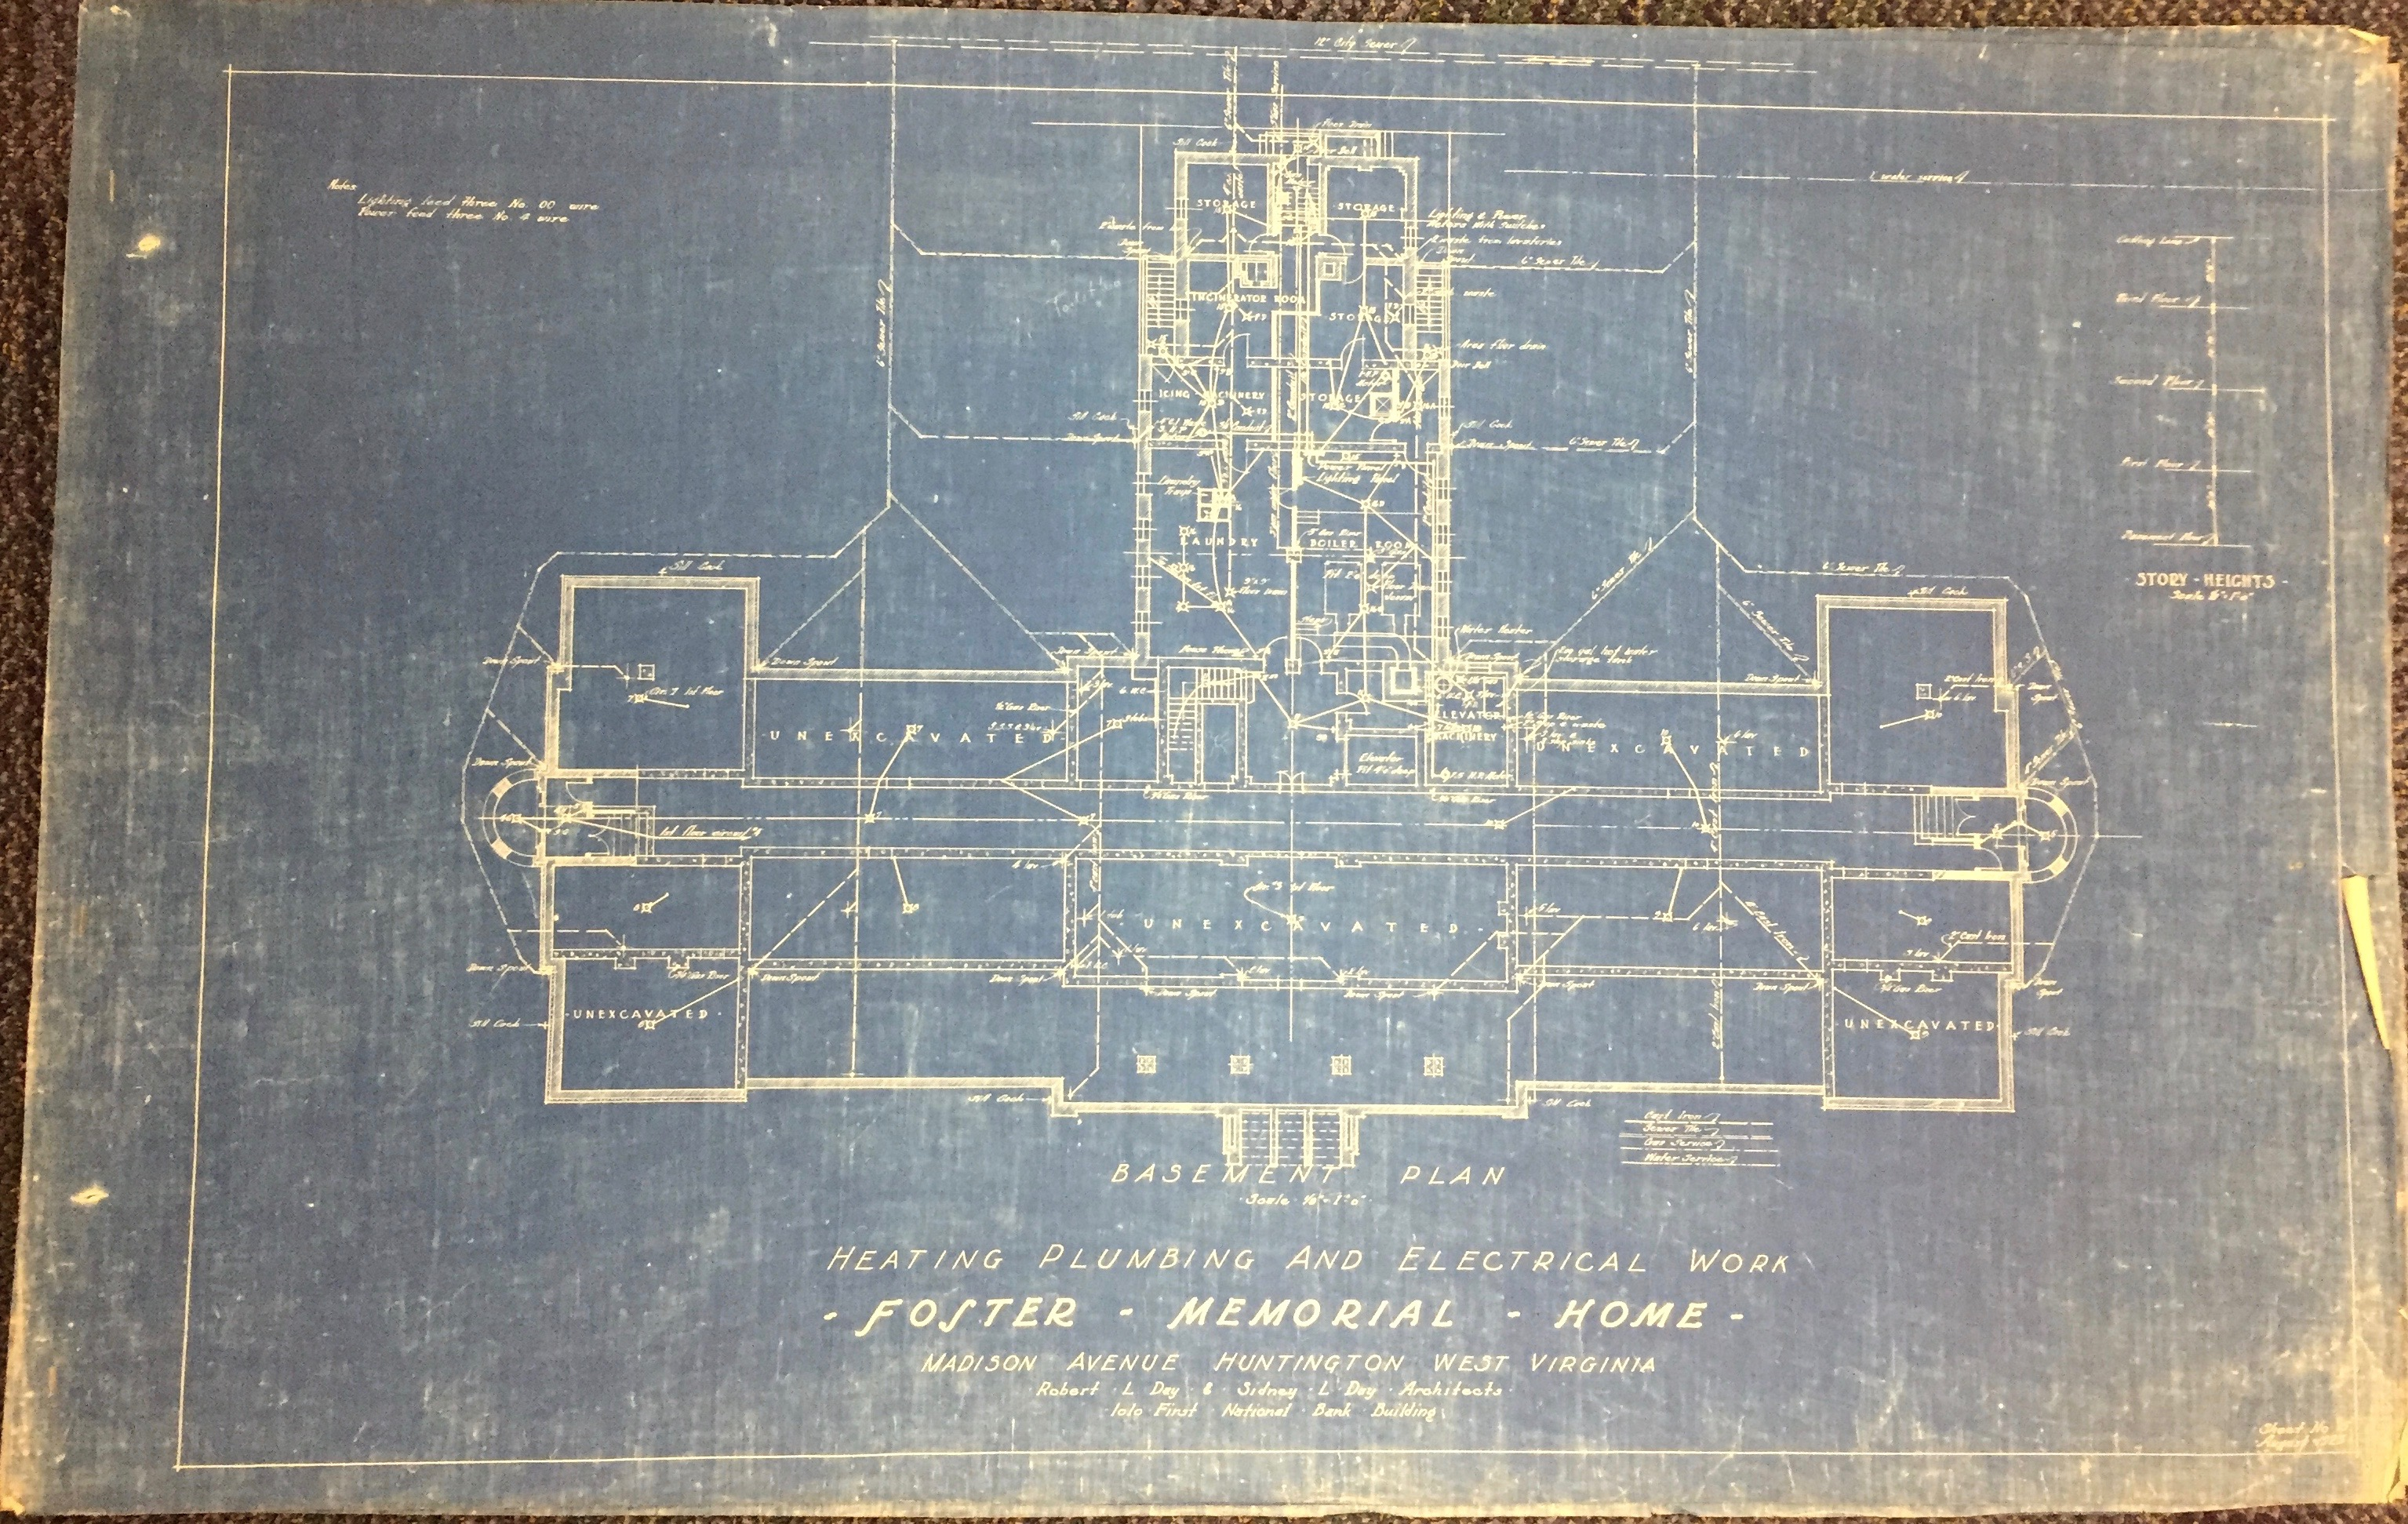 A blueprint showing heating and plumbing work for the Foster Memorial Building, from the Sidney Day collection in Marshall University Special Collections Department.